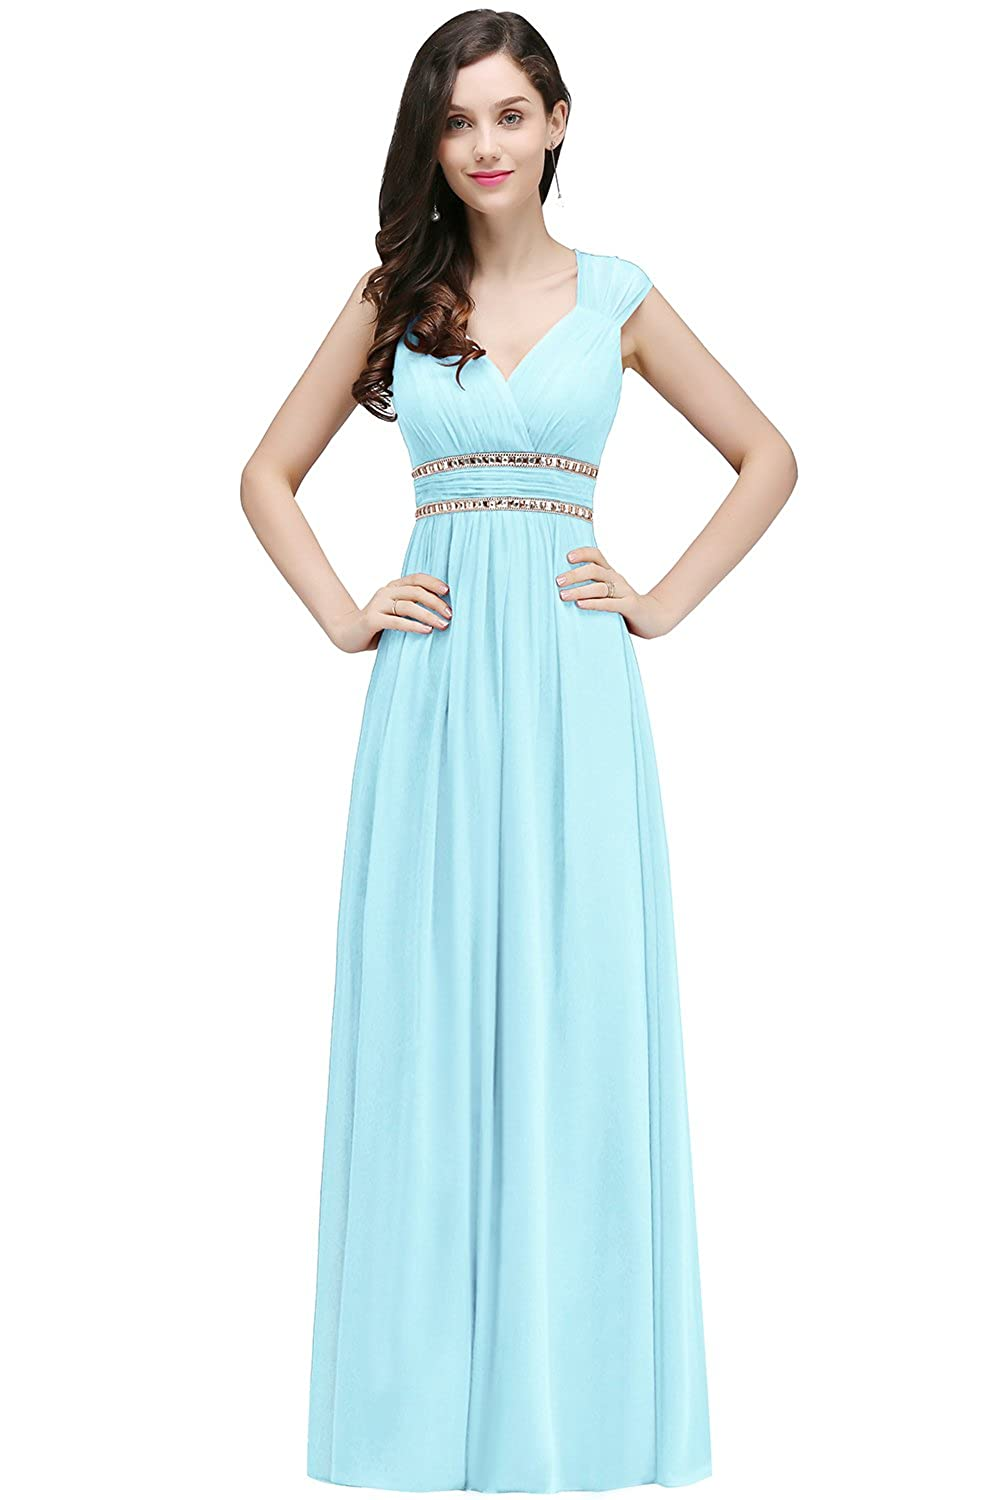 Babyonline Womens Chiffon Long Formal Evening Maternity Dresses for ...